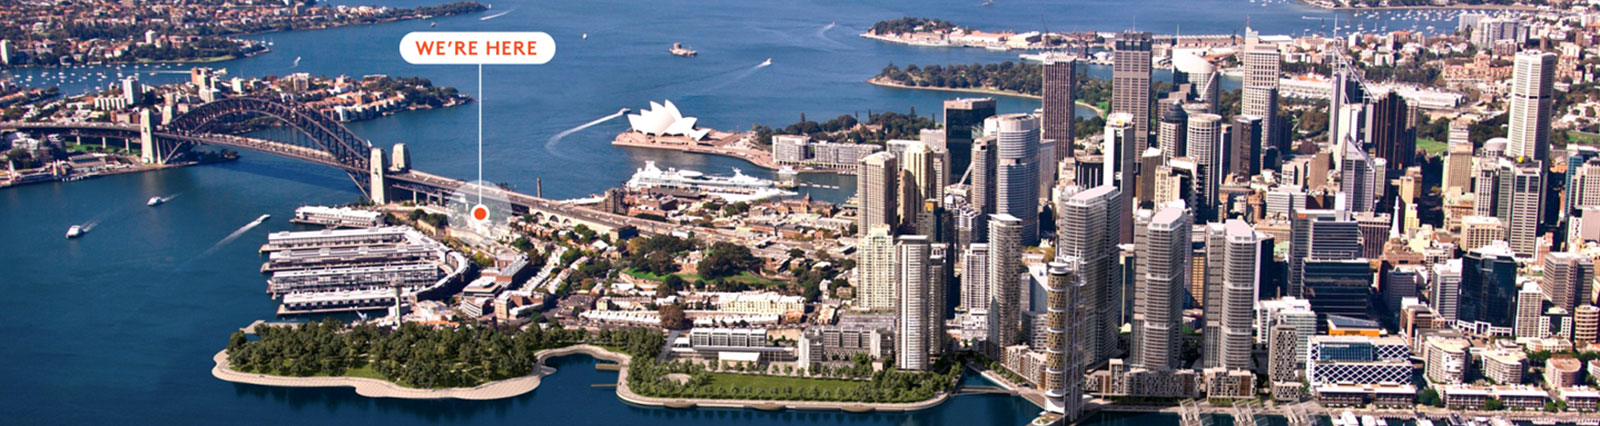 Sitback are located in The Rocks, Sydney